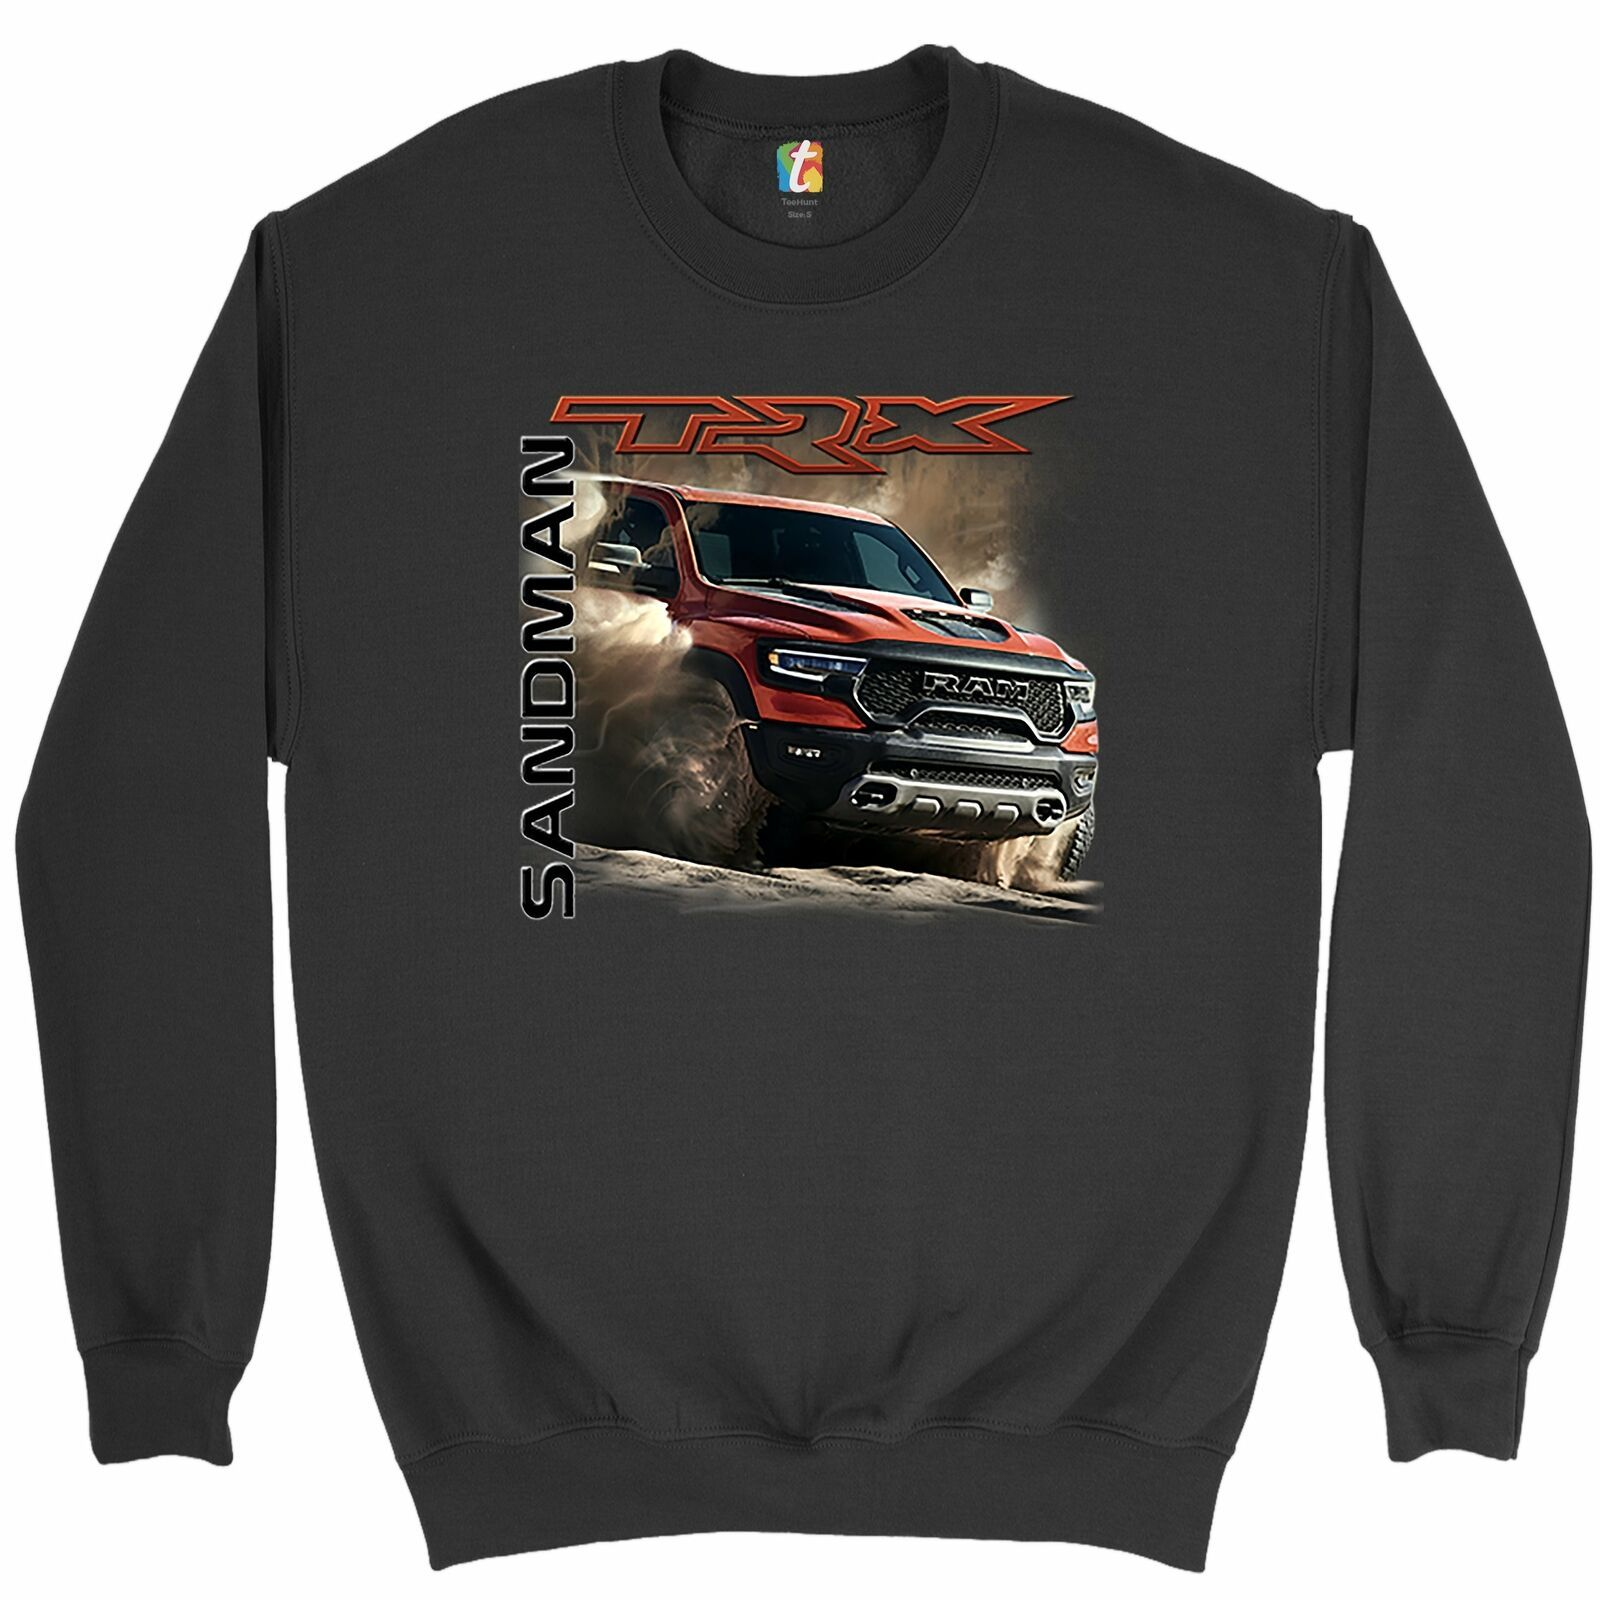 Primary image for RAM 1500 TRX Sandman Sweatshirt Off-Road V8 Pickup Truck Licensed Crewneck